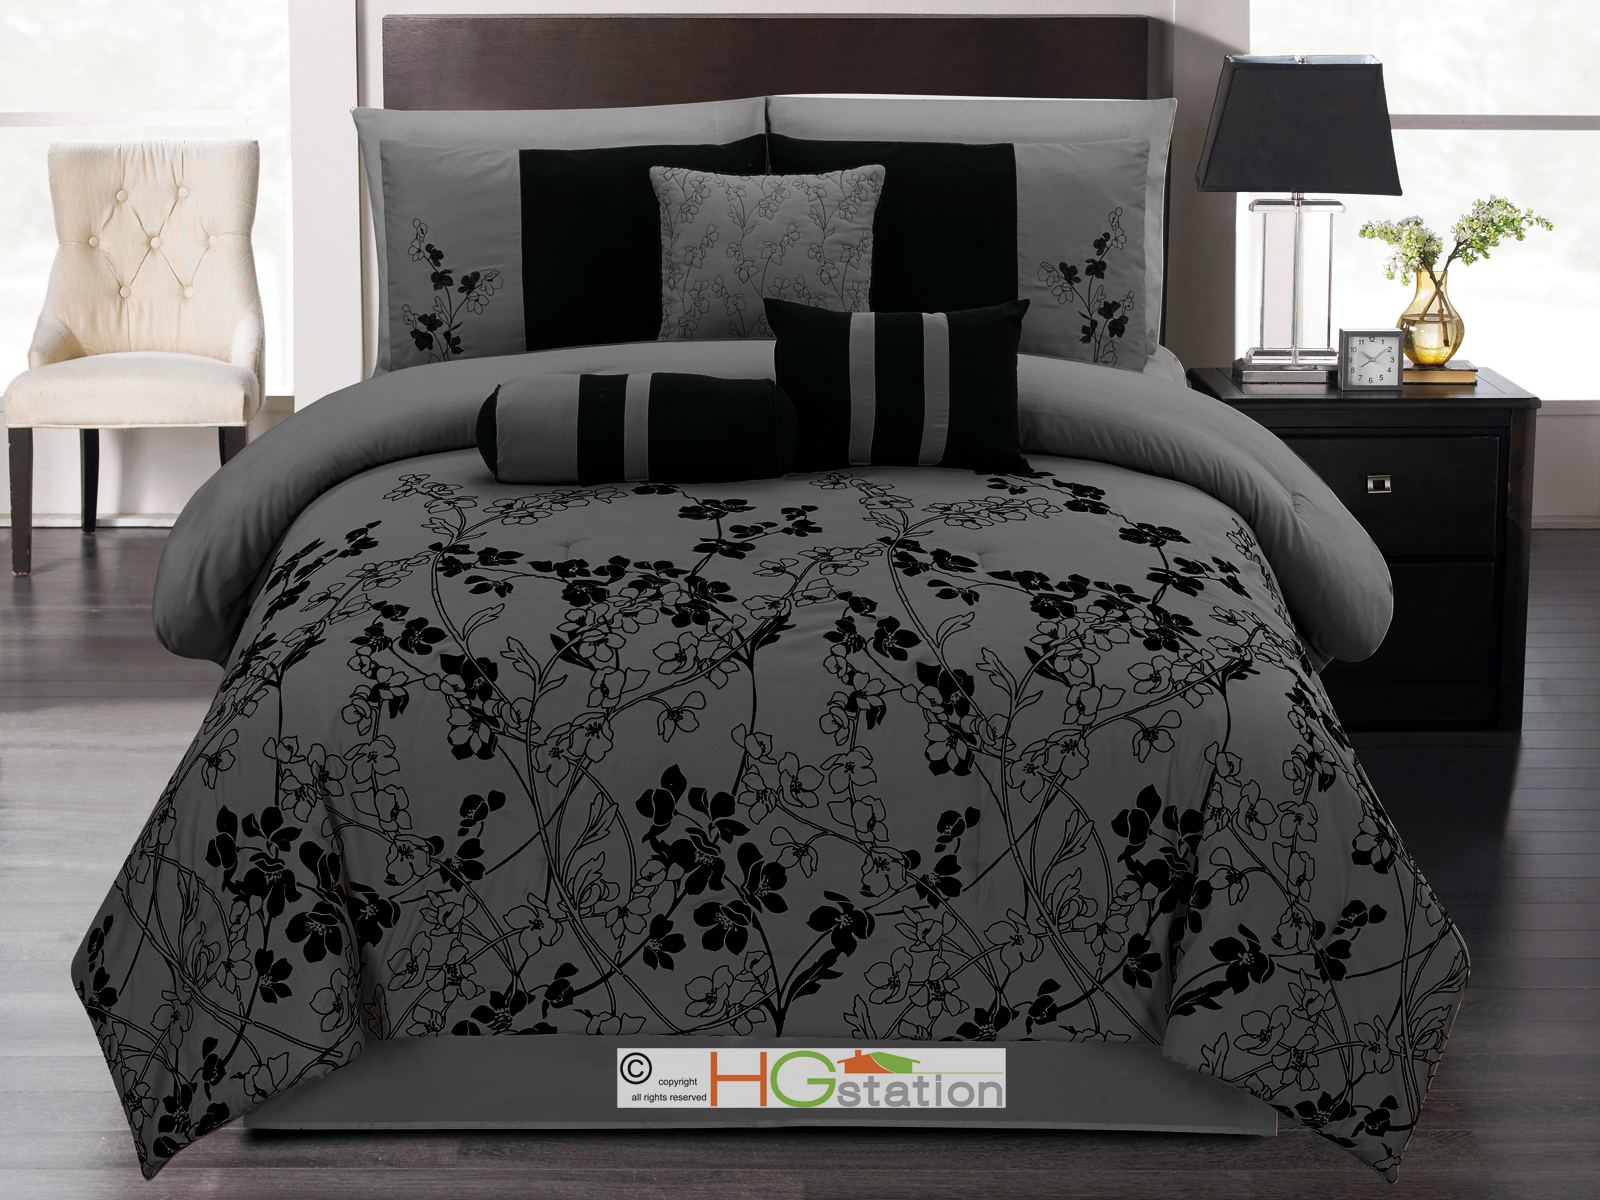 Shop for dark grey comforter sets online at Target. Free shipping on purchases over $35 and save 5% every day with your Target REDcard.